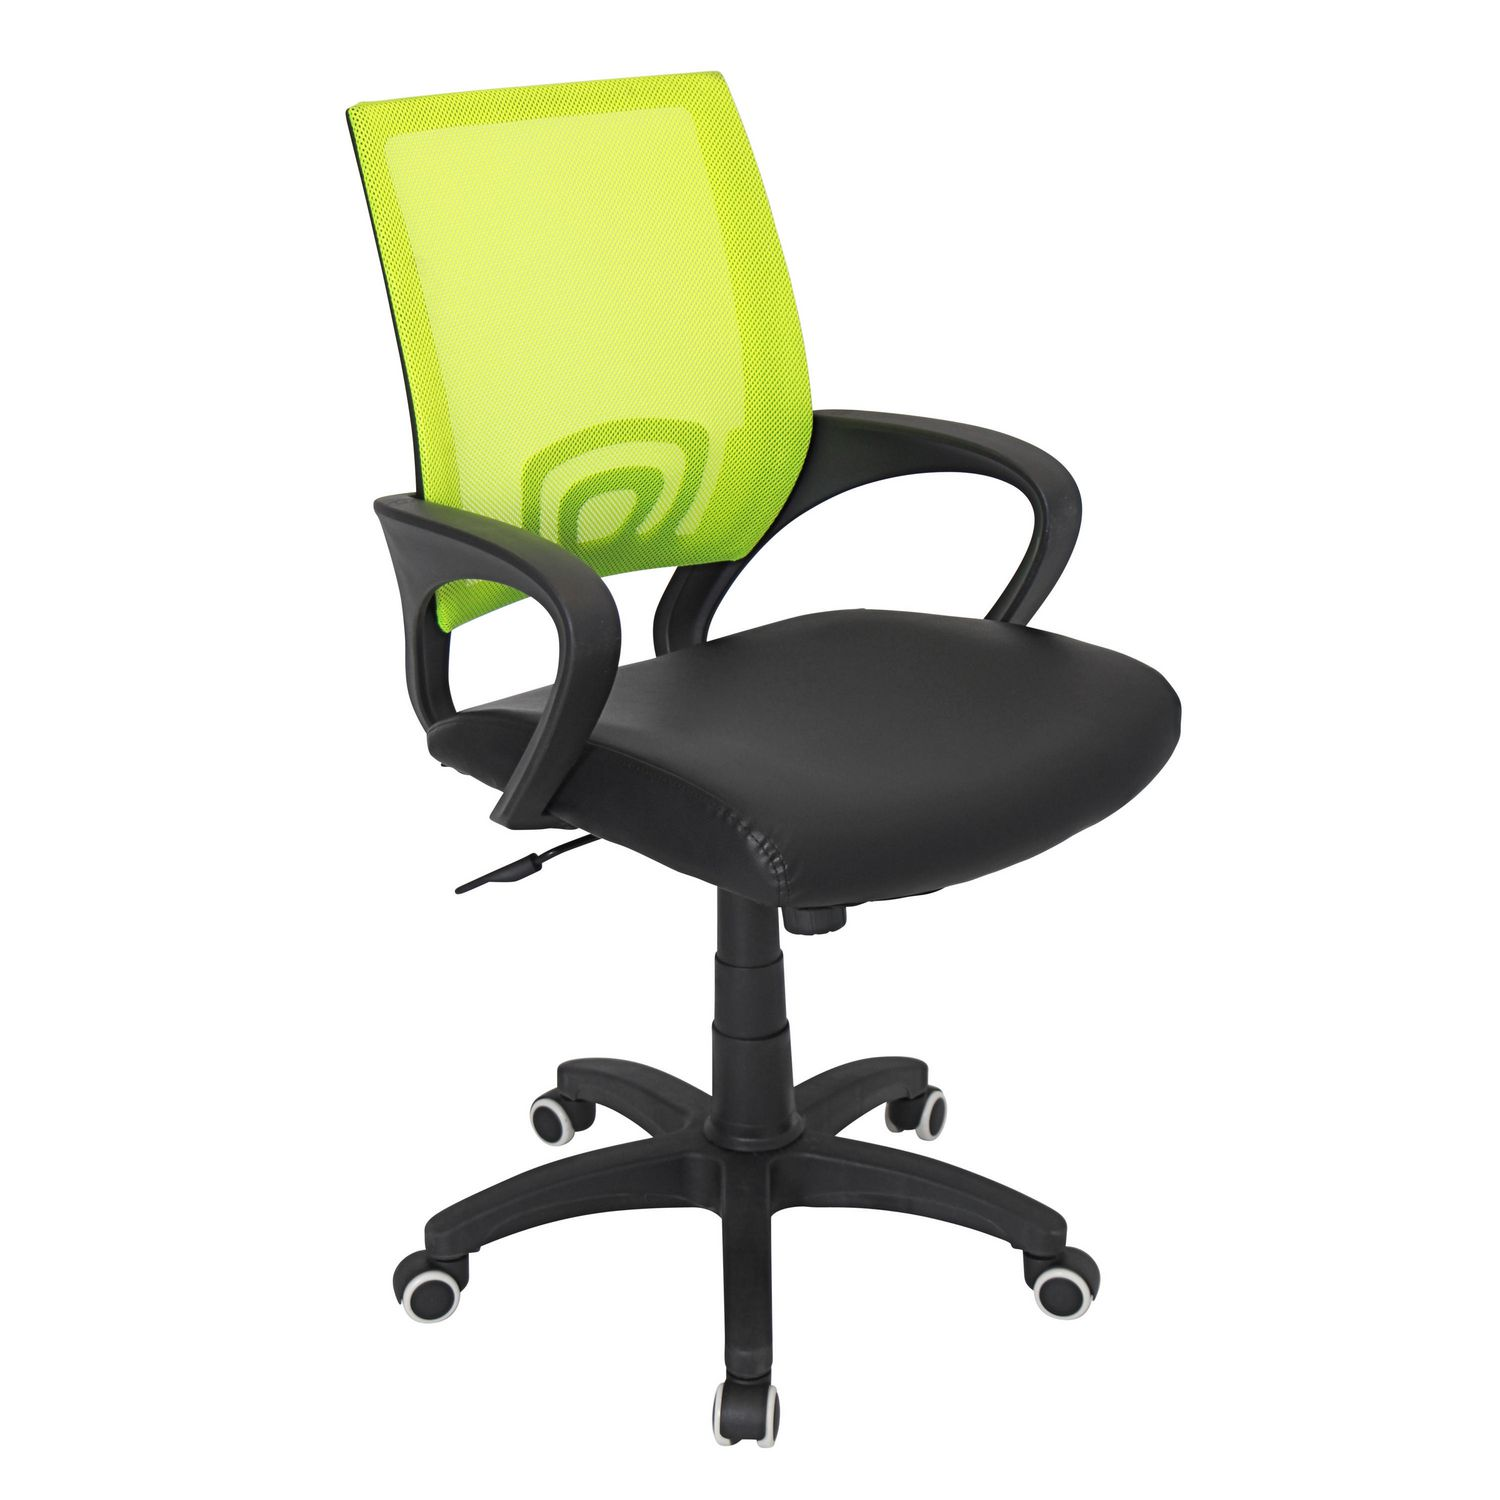 onyx chair office can kellan chairs